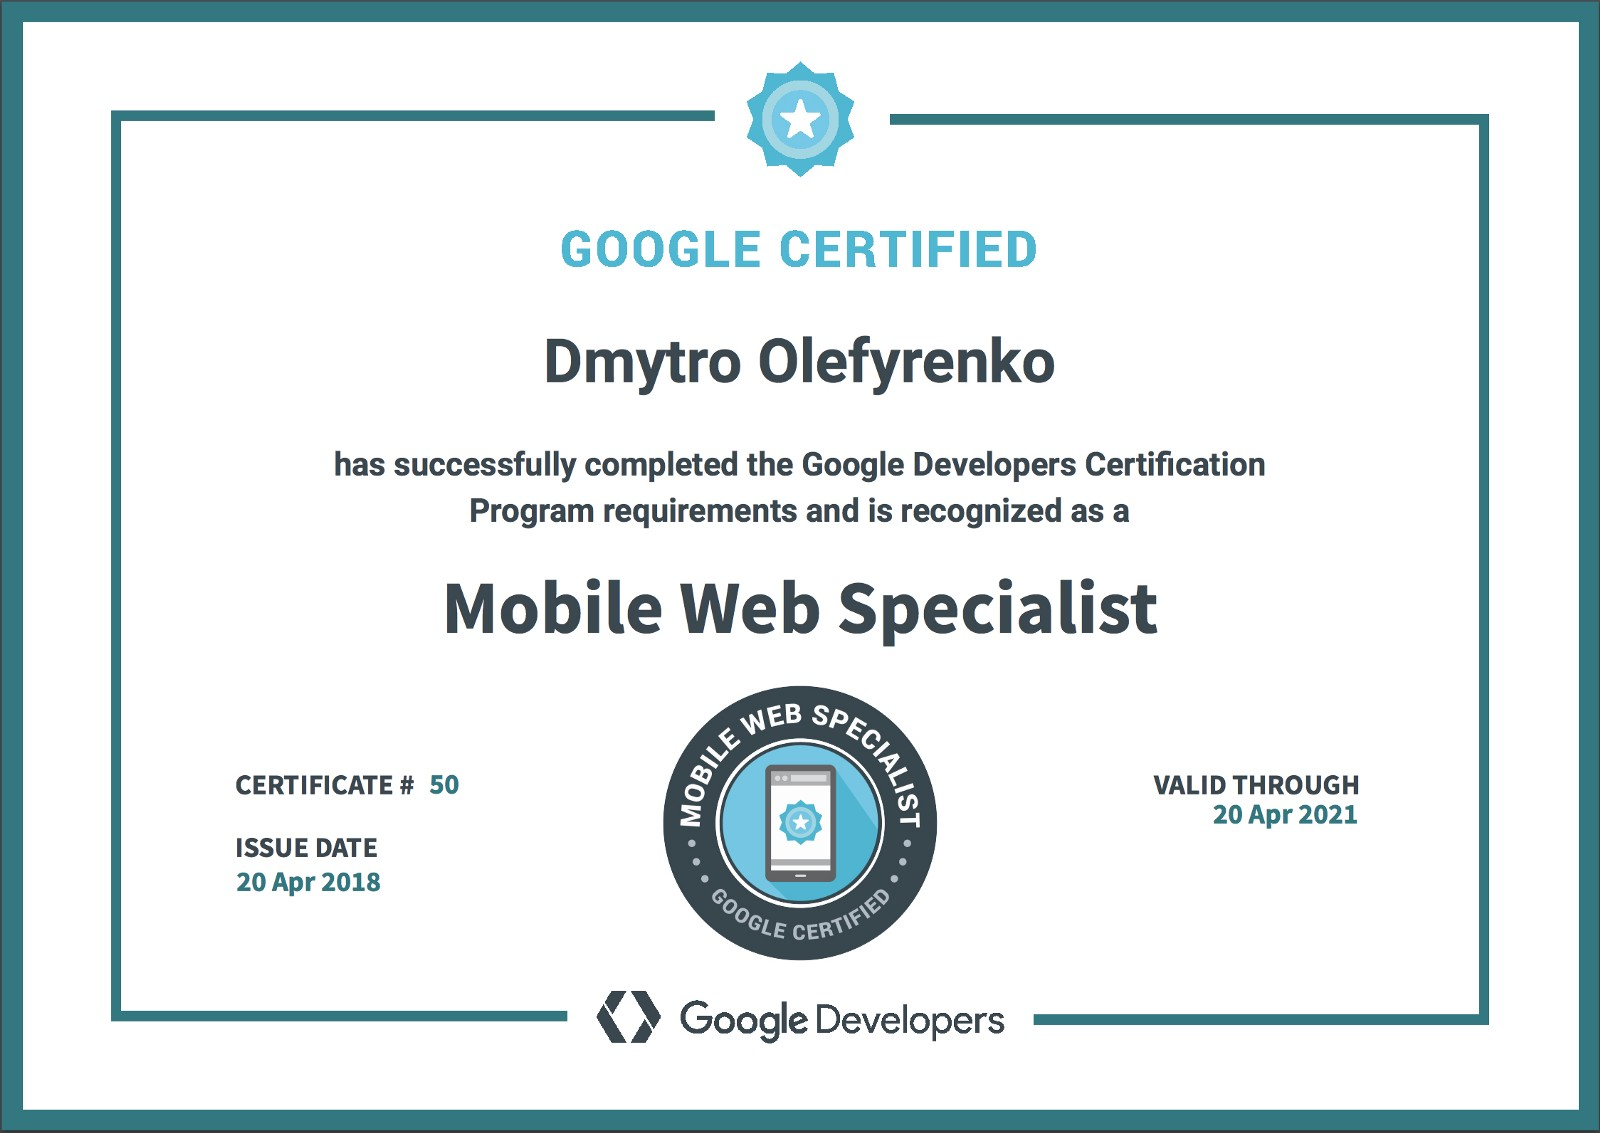 How To Become Google Certified Mobile Web Specialist